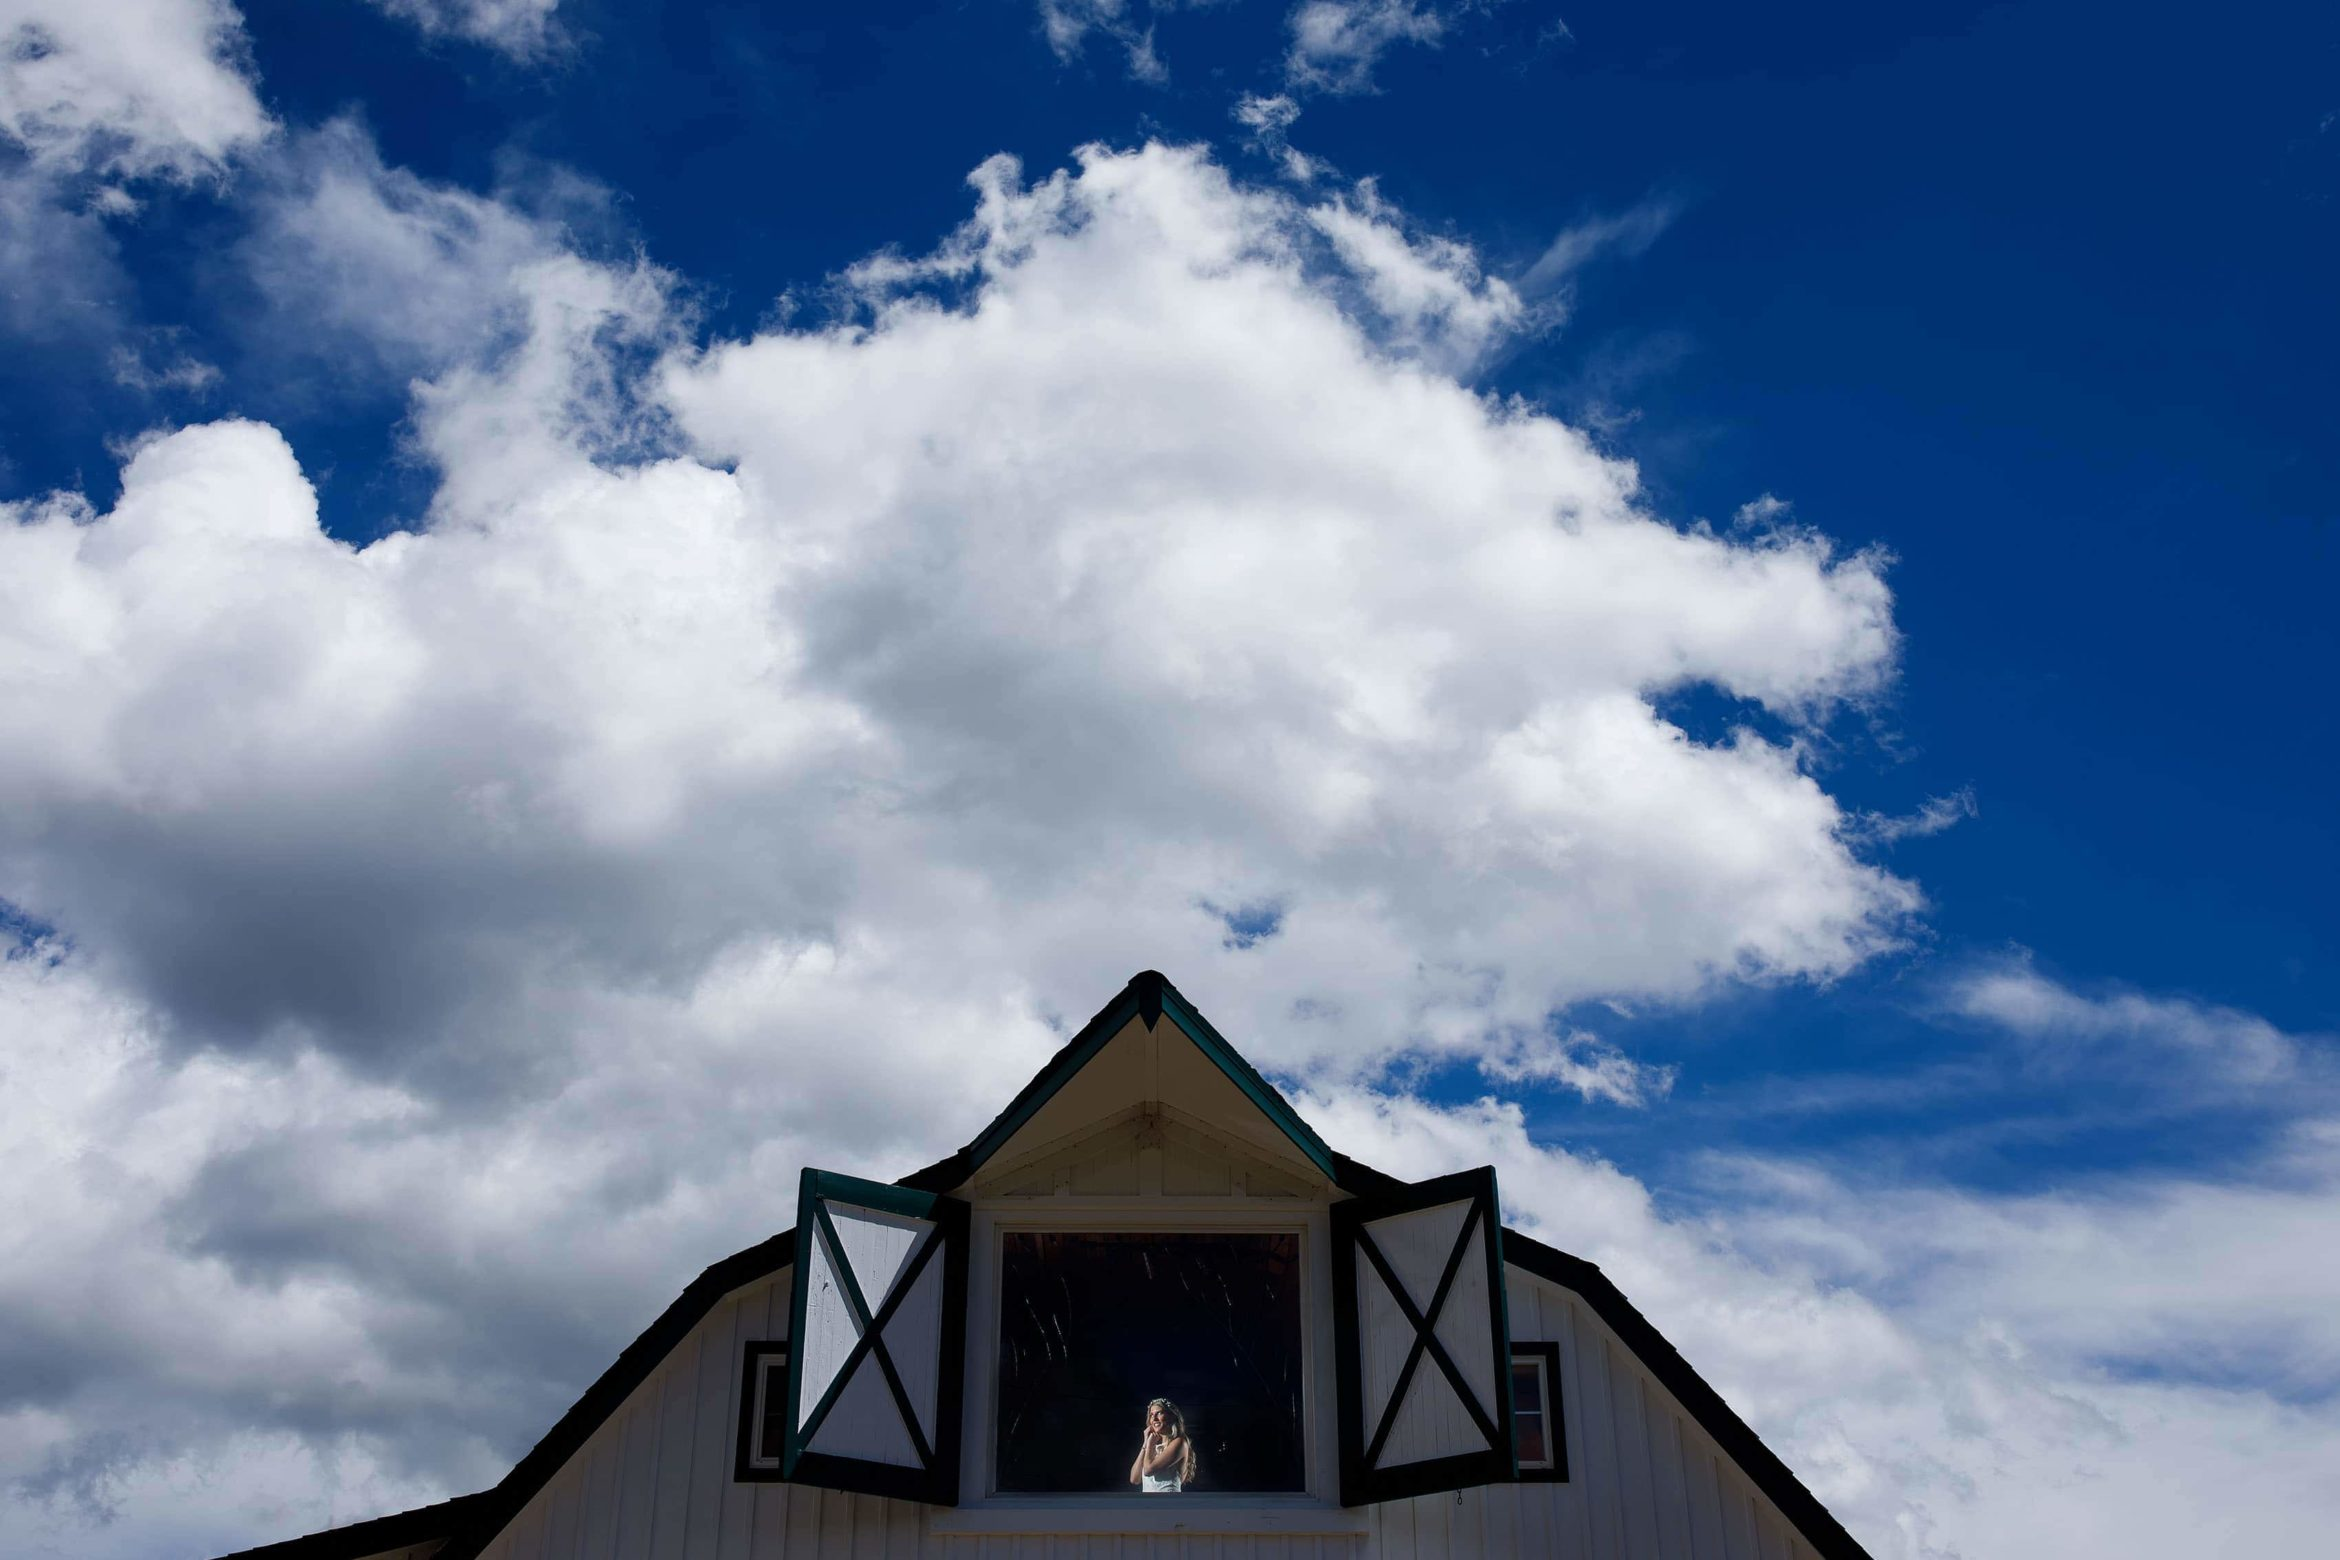 The bride gets ready in the barn at Deer Creek Valley Ranch